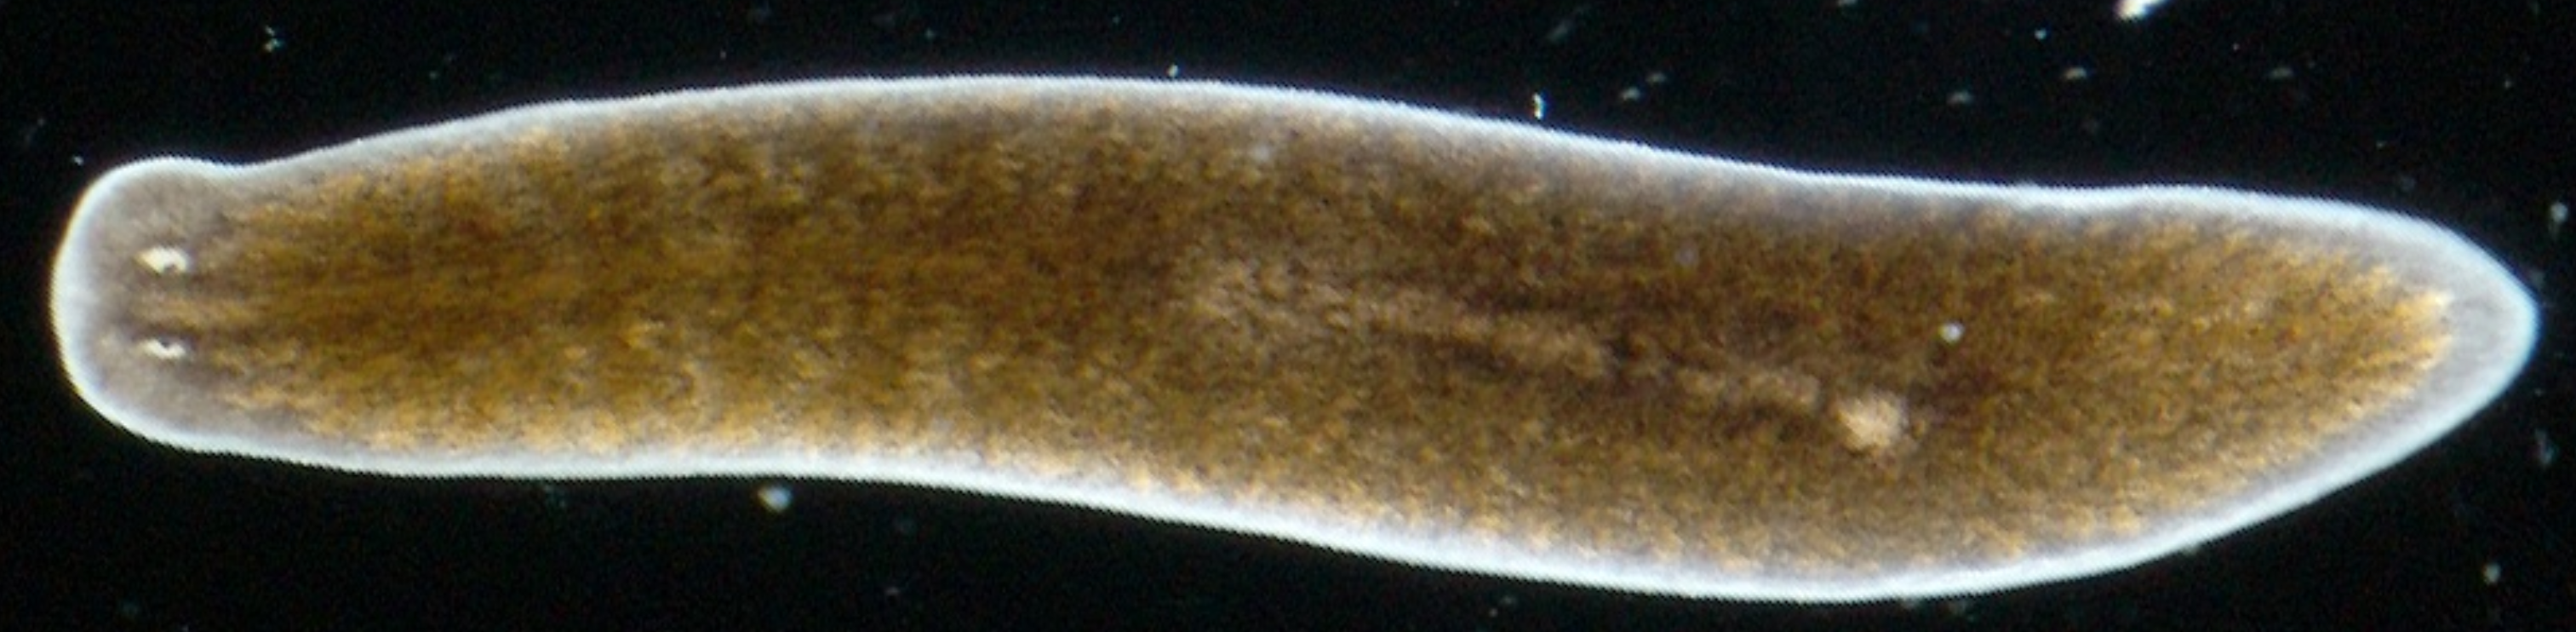 significance of planarians essay Planarians are hermaphrodites, meaning they have both female and male organs they reproduce sexually but they cannot reproduce by fertilizing their own eggs with their sperm planarians can also reproduce asexually by regeneration.